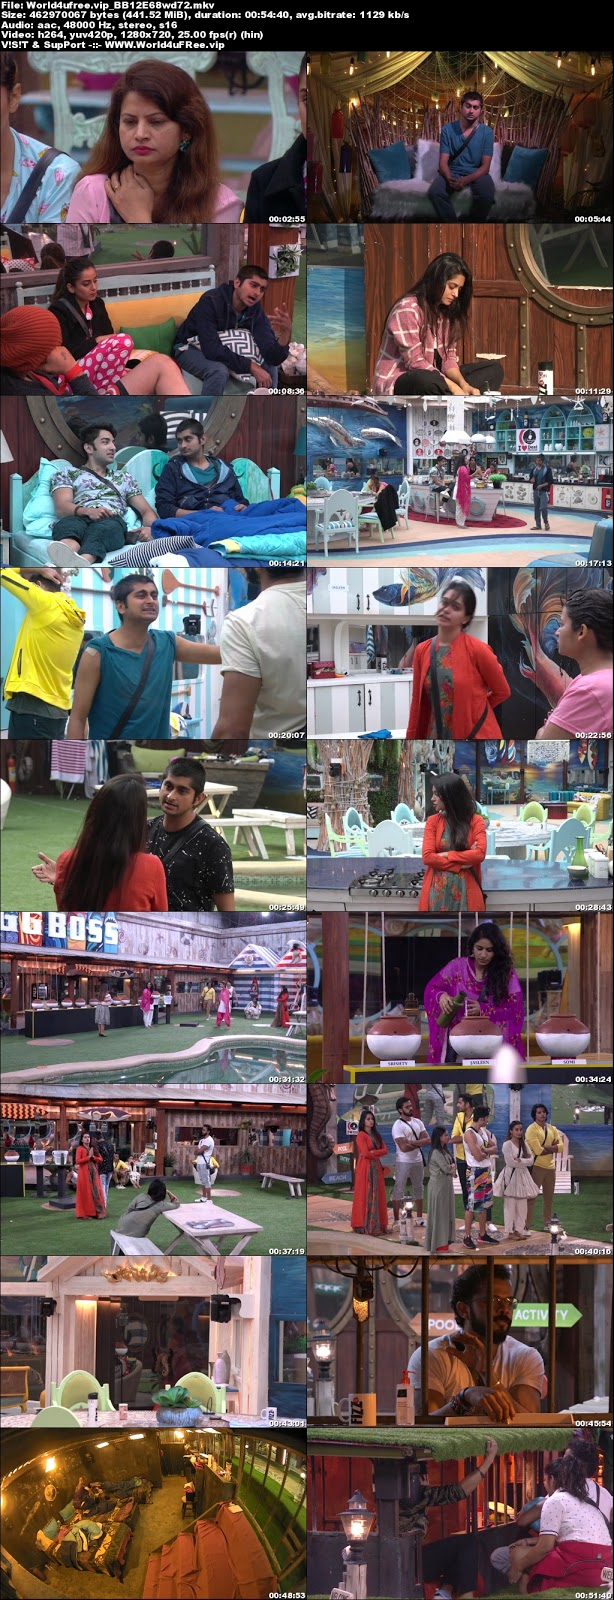 Bigg Boss 12 Episode 68 23 November 2018 720p WEBRip 400Mb x264 world4ufree.vip tv show Bigg Boss 12 Download Episode 68 23  november 2018 world4ufree.vip 400mb 720p HD  free download or watch online at world4ufree.vip